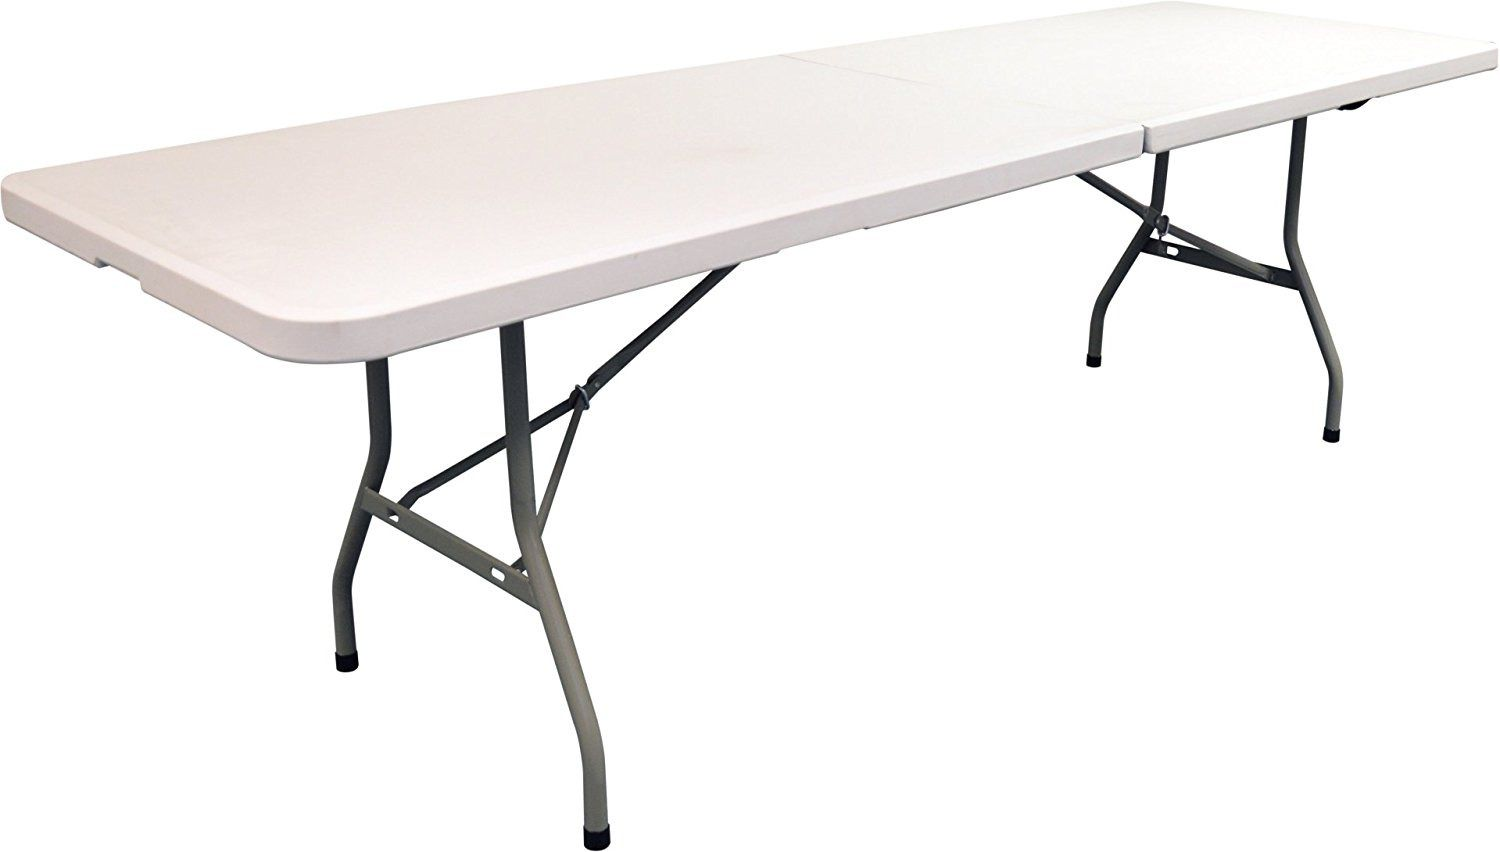 100+ 48 Round Folding Table Costco   Best Paint For Furniture Check More At  Http